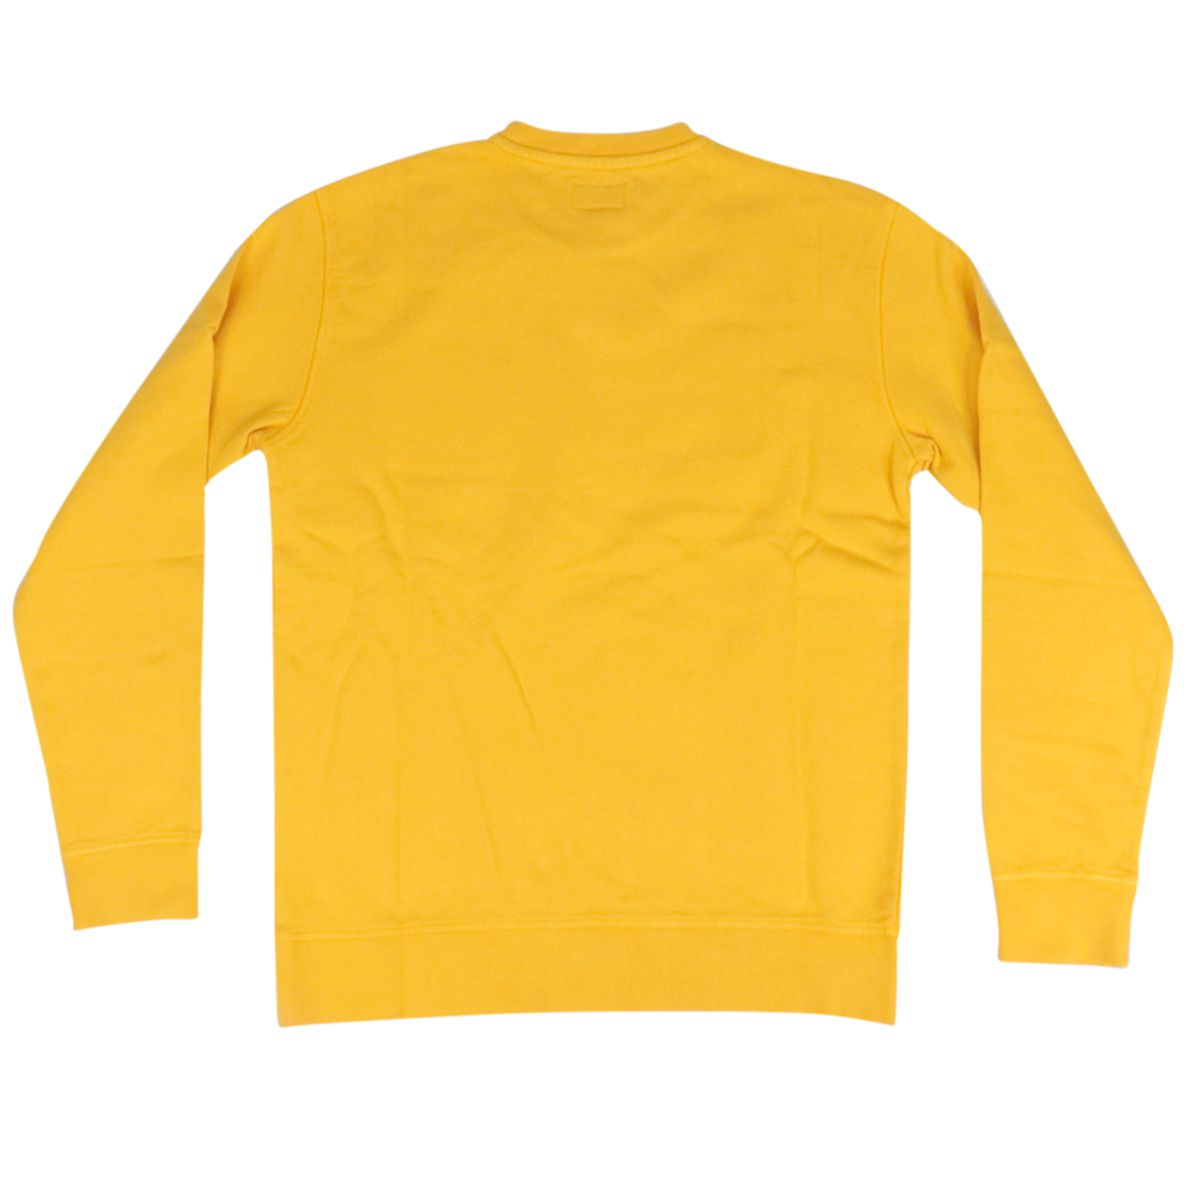 Cotton sweatshirt with front logo print Yellow Woolrich